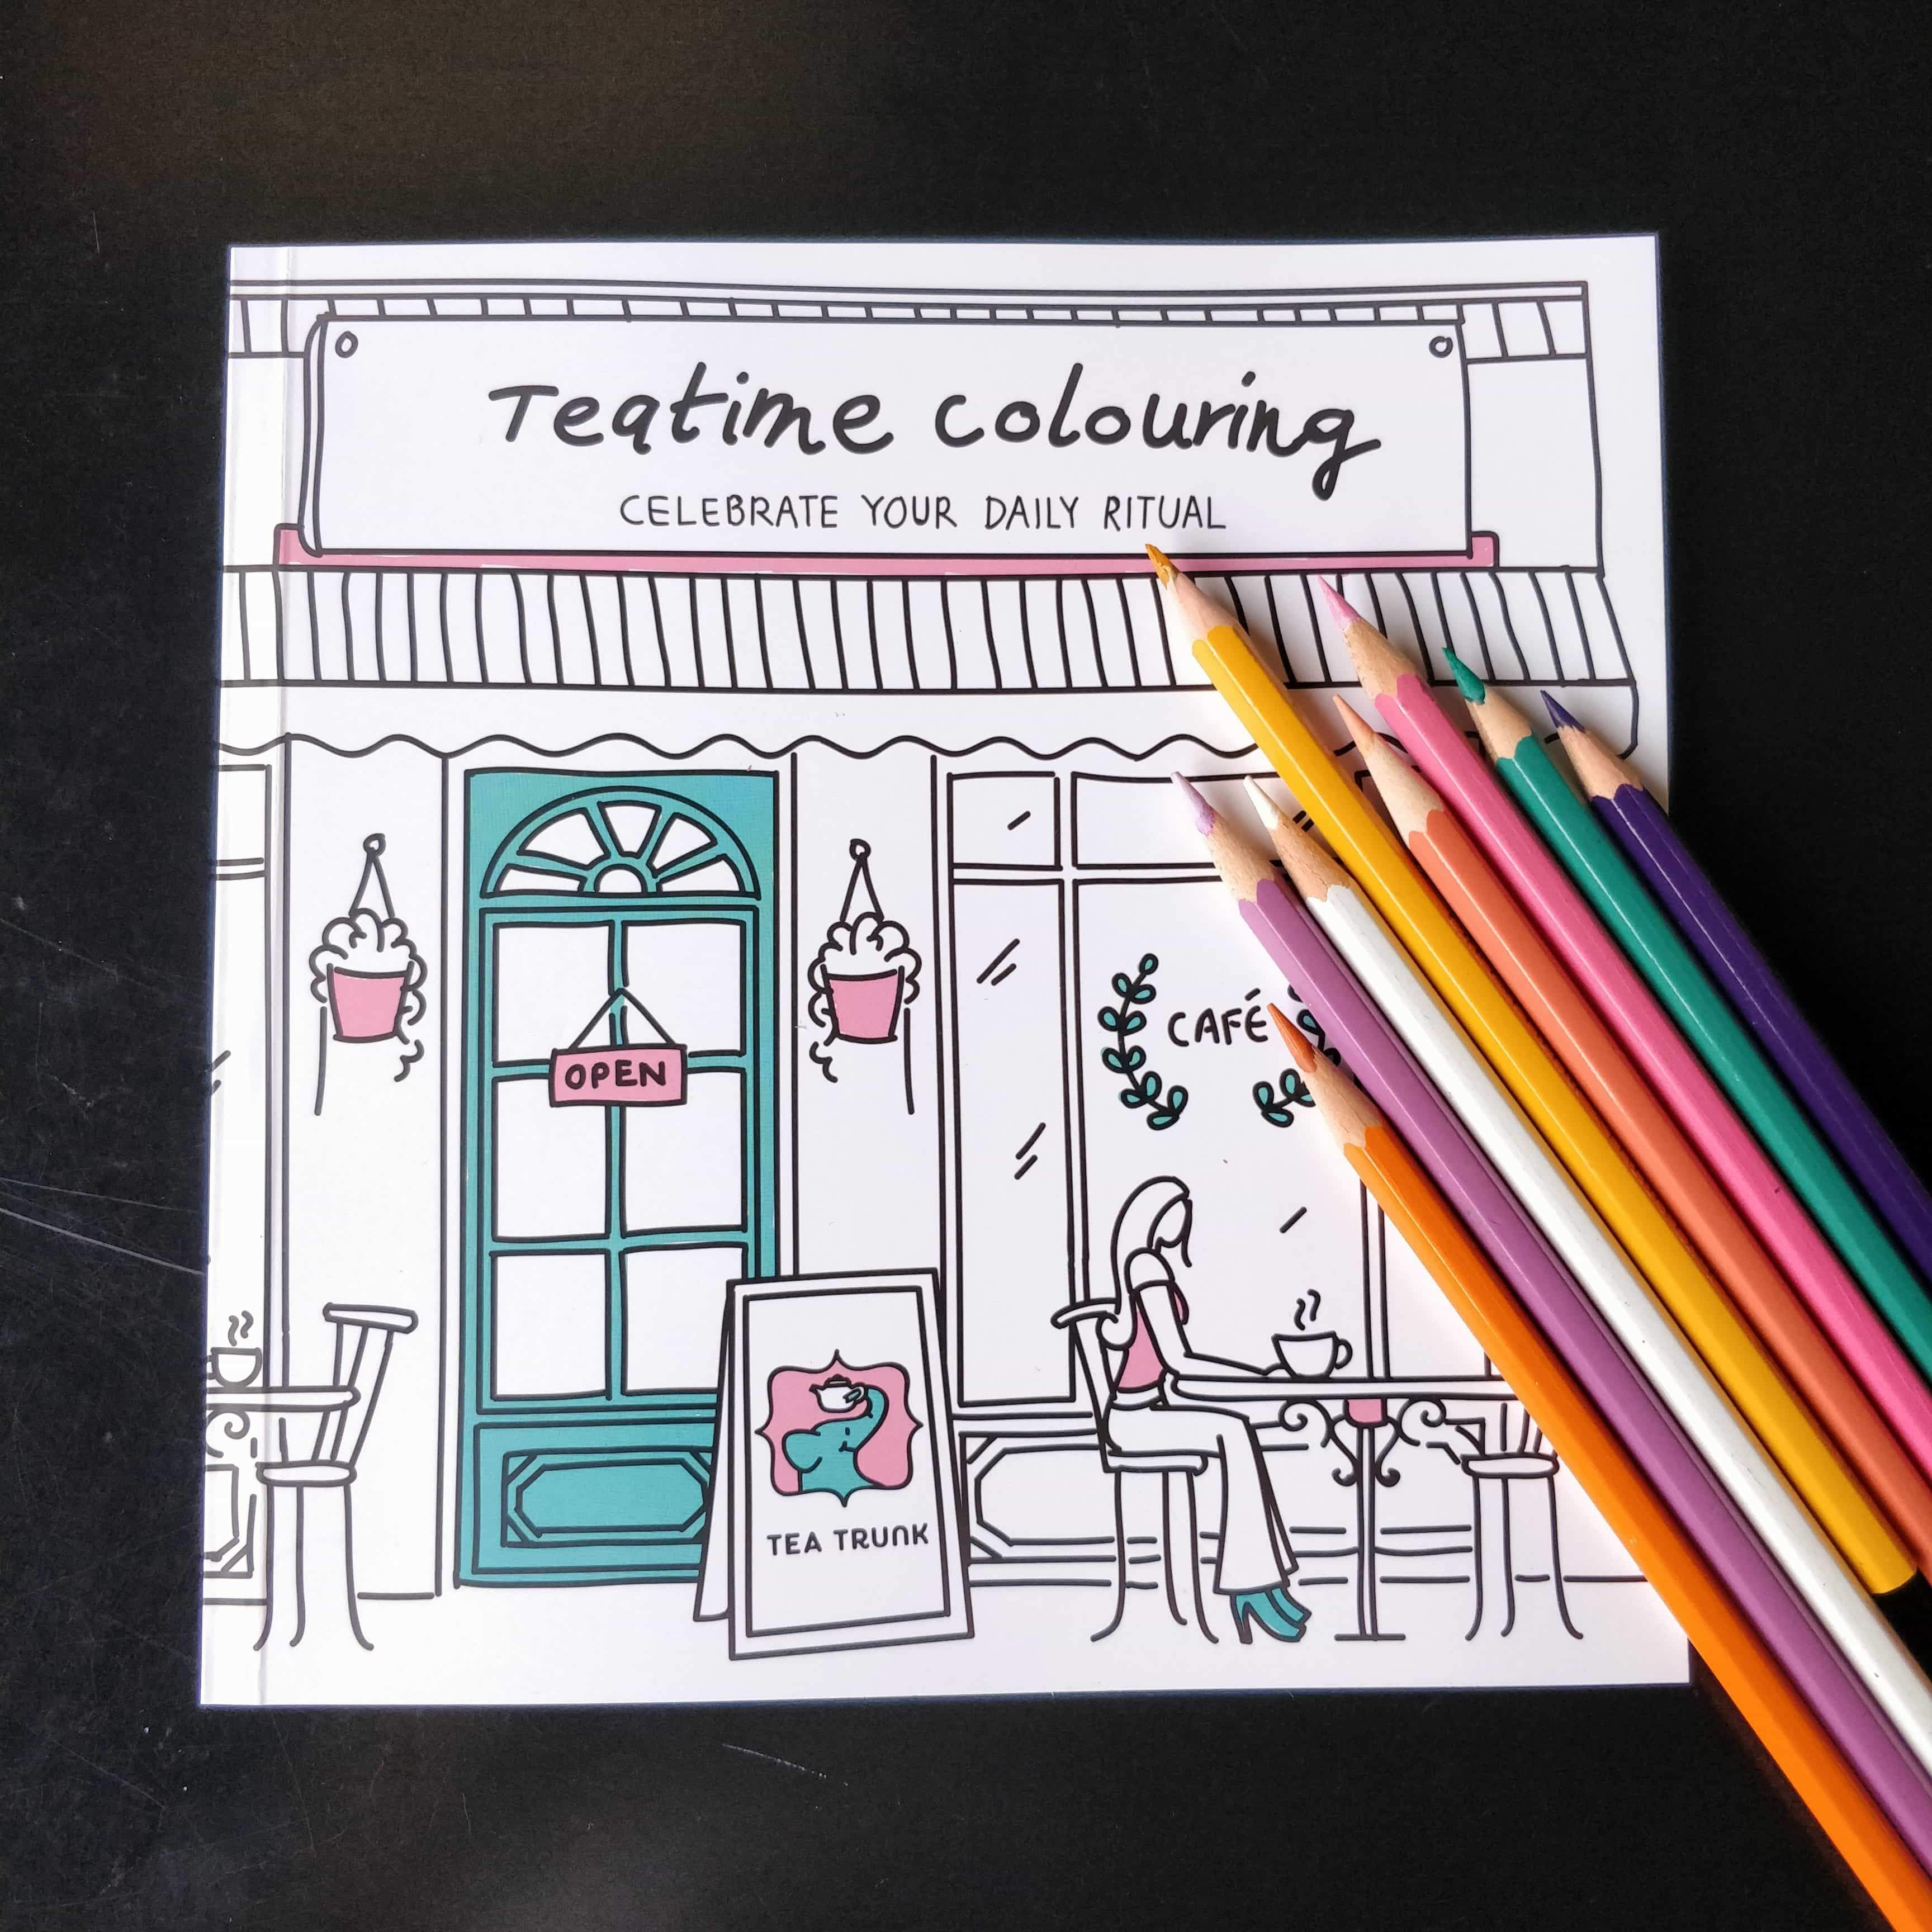 Teatime Colouring, an adult colouring book